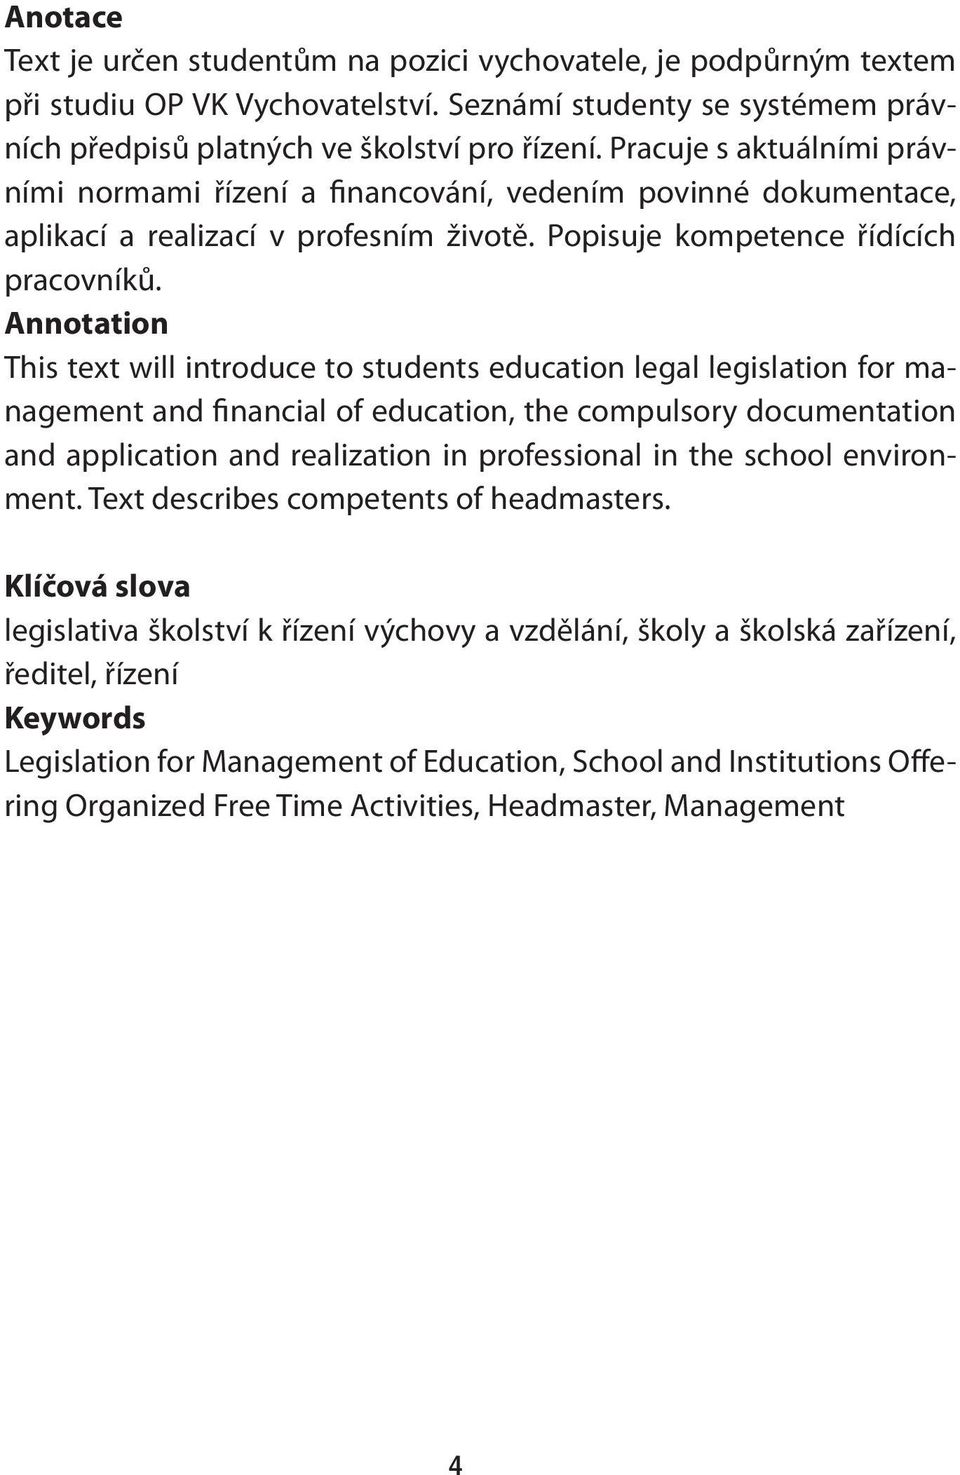 Annotation This text will introduce to students education legal legislation for management and financial of education, the compulsory documentation and application and realization in professional in